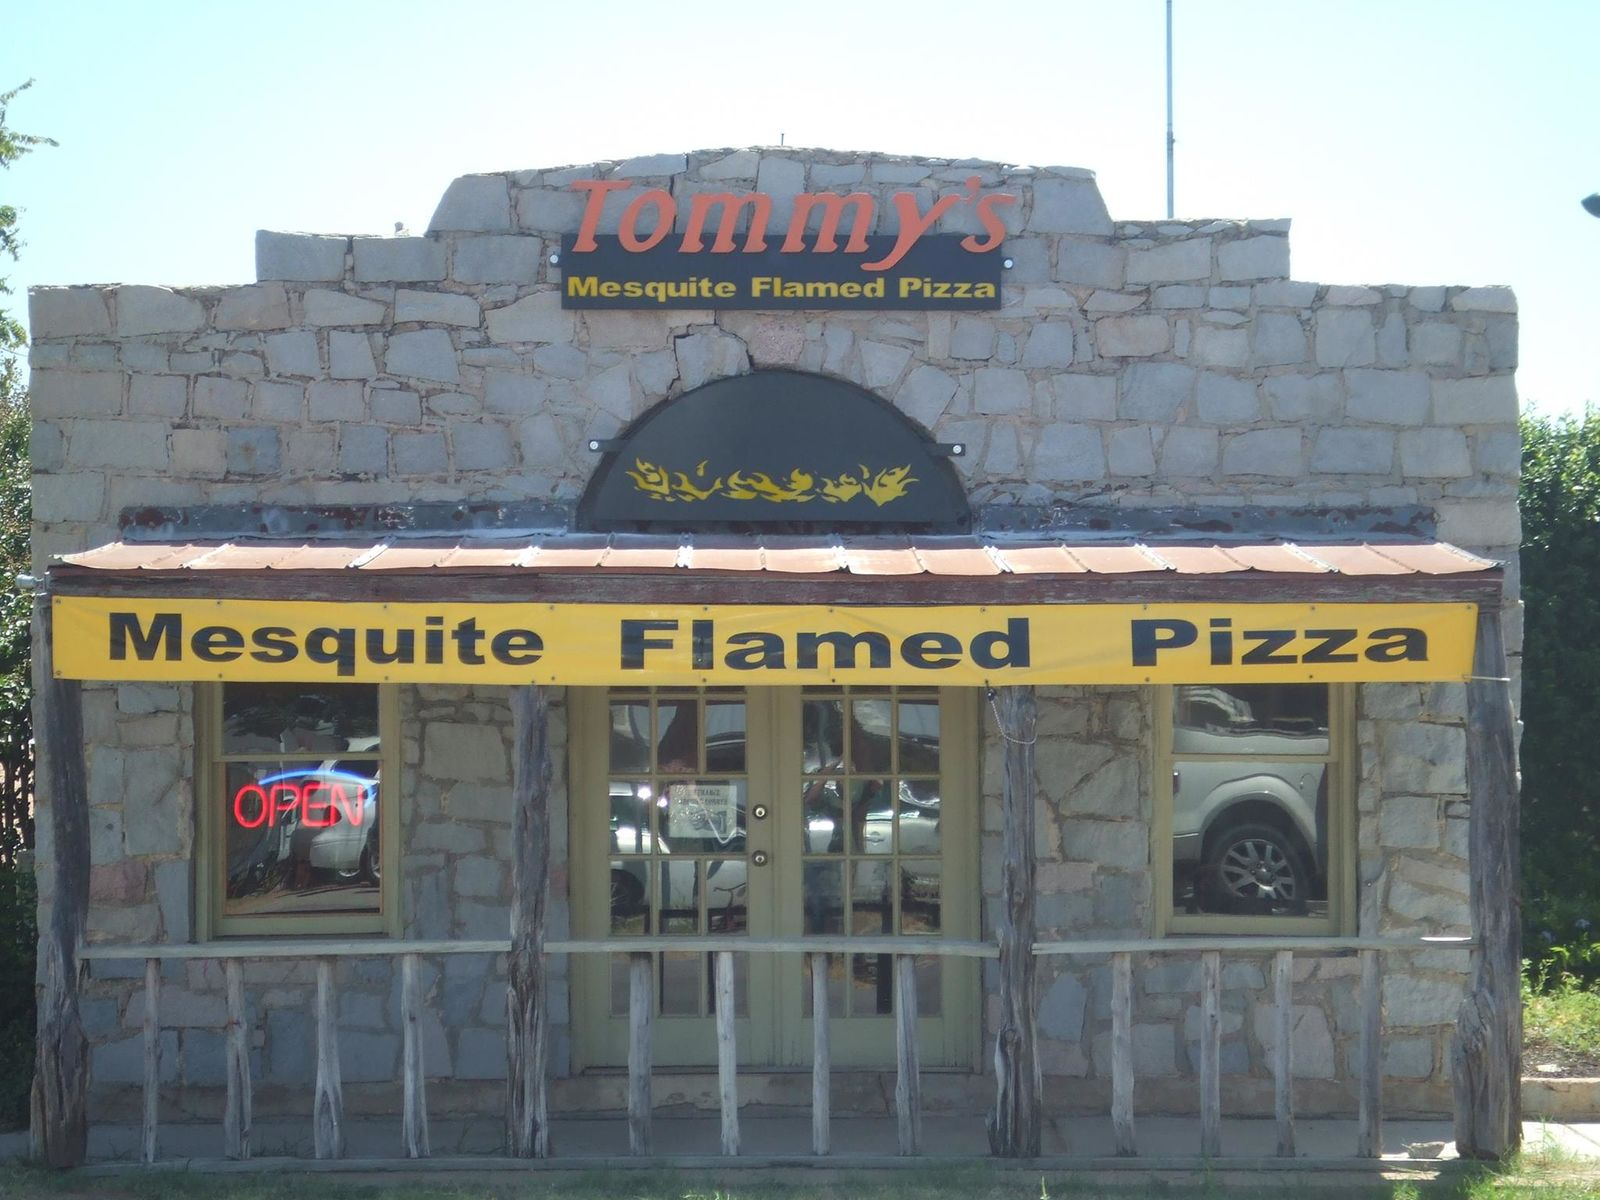 Tommy's Mesquite-Flamed Pizza in Llano, Texas